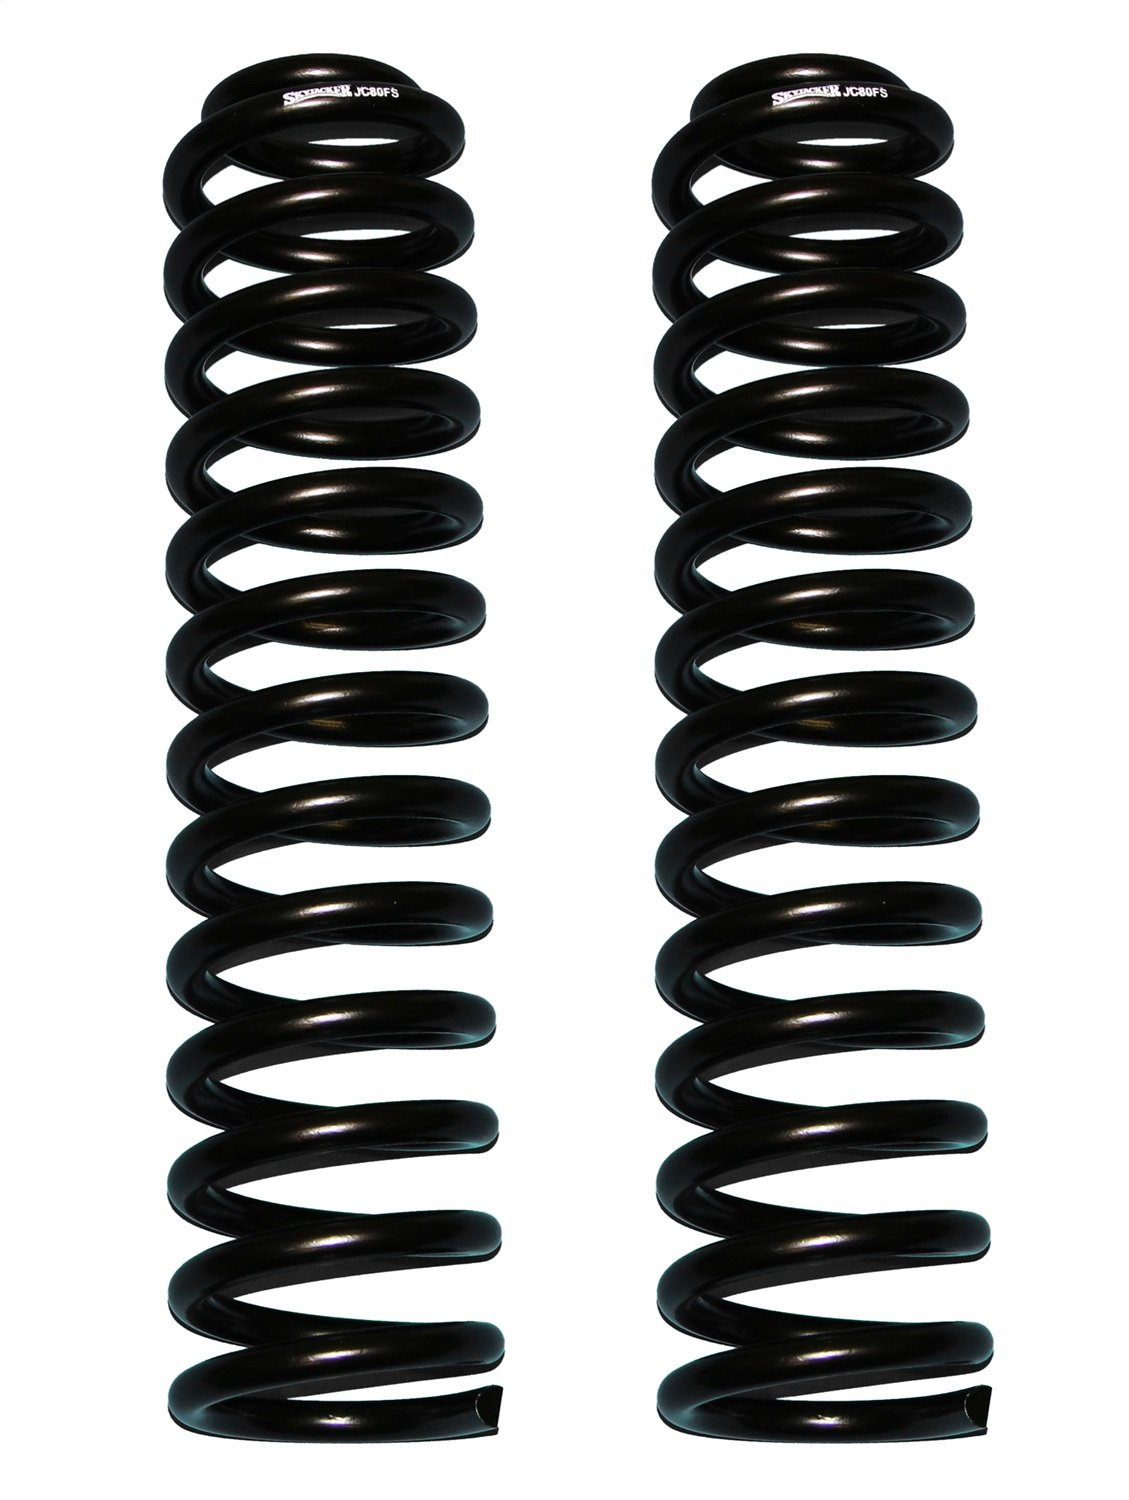 Skyjacker JC80F - Skyjacker Softride Coil Springs